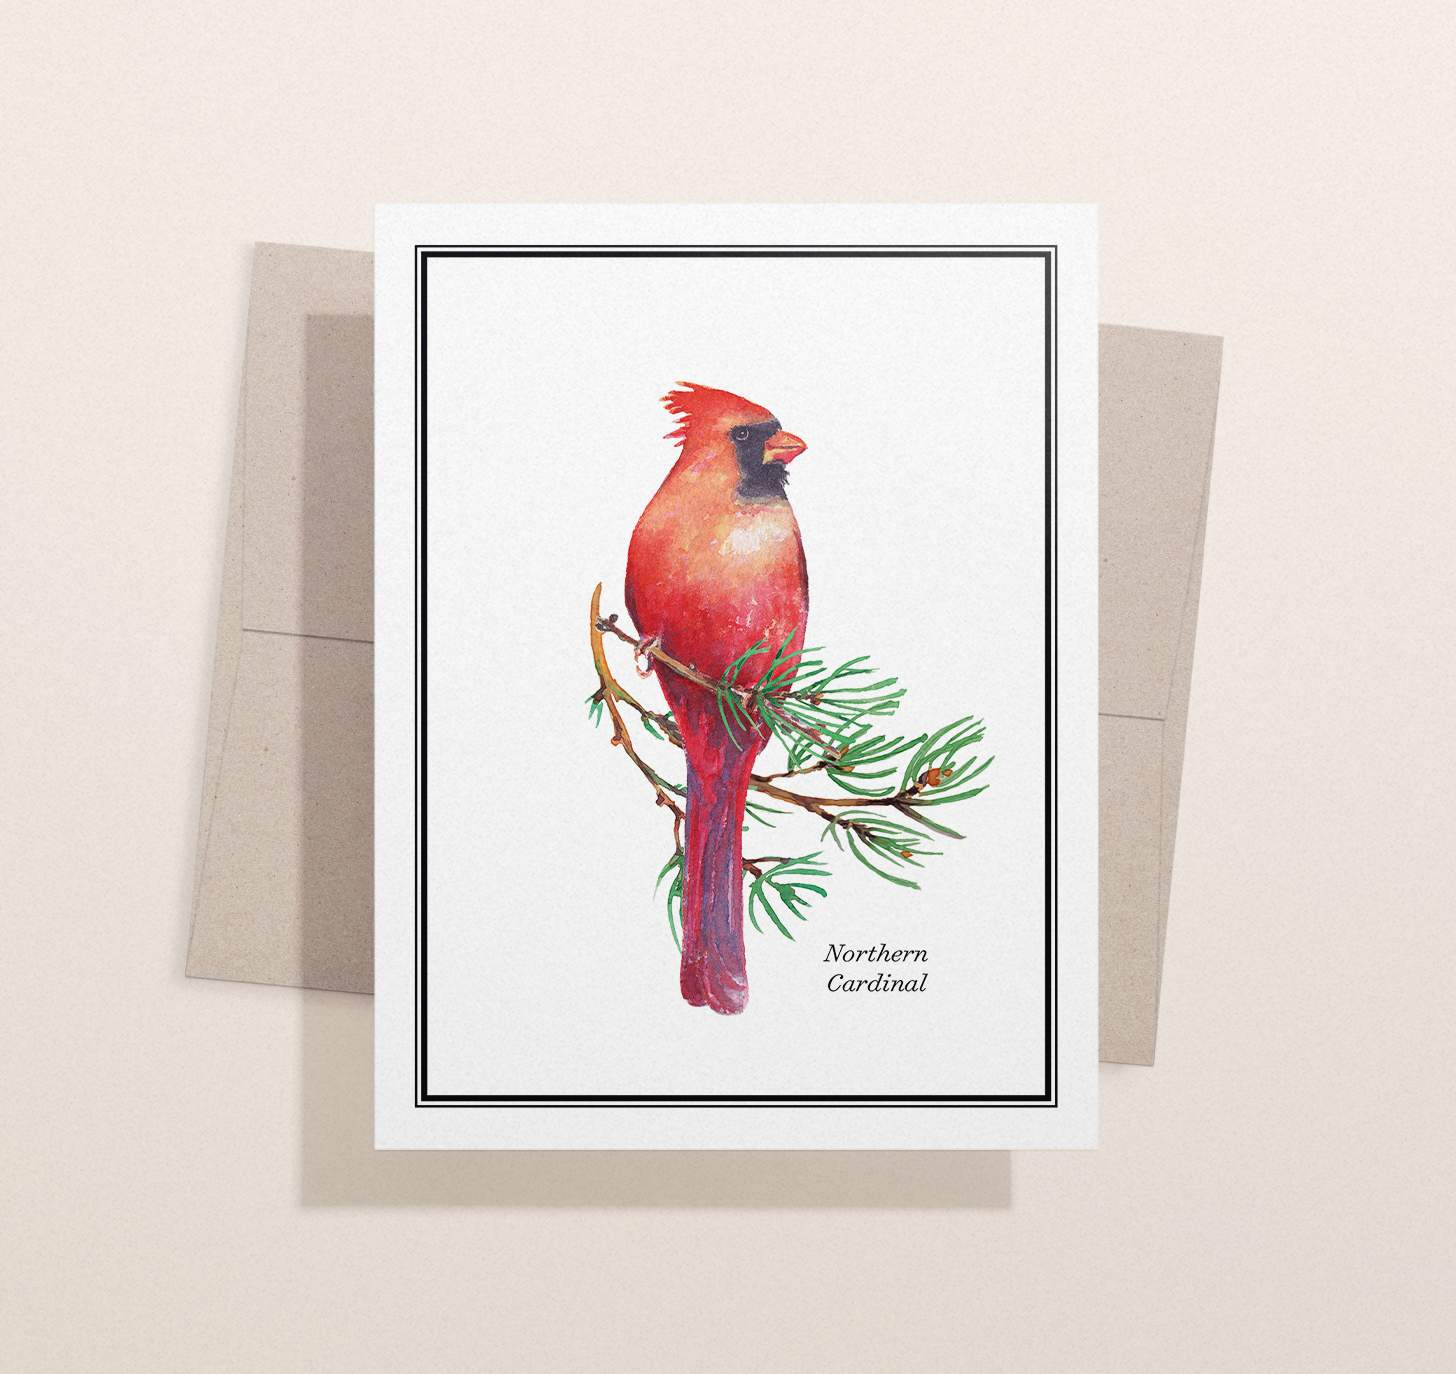 Red and black bird sitting on pine branch design with envelope and light brown background